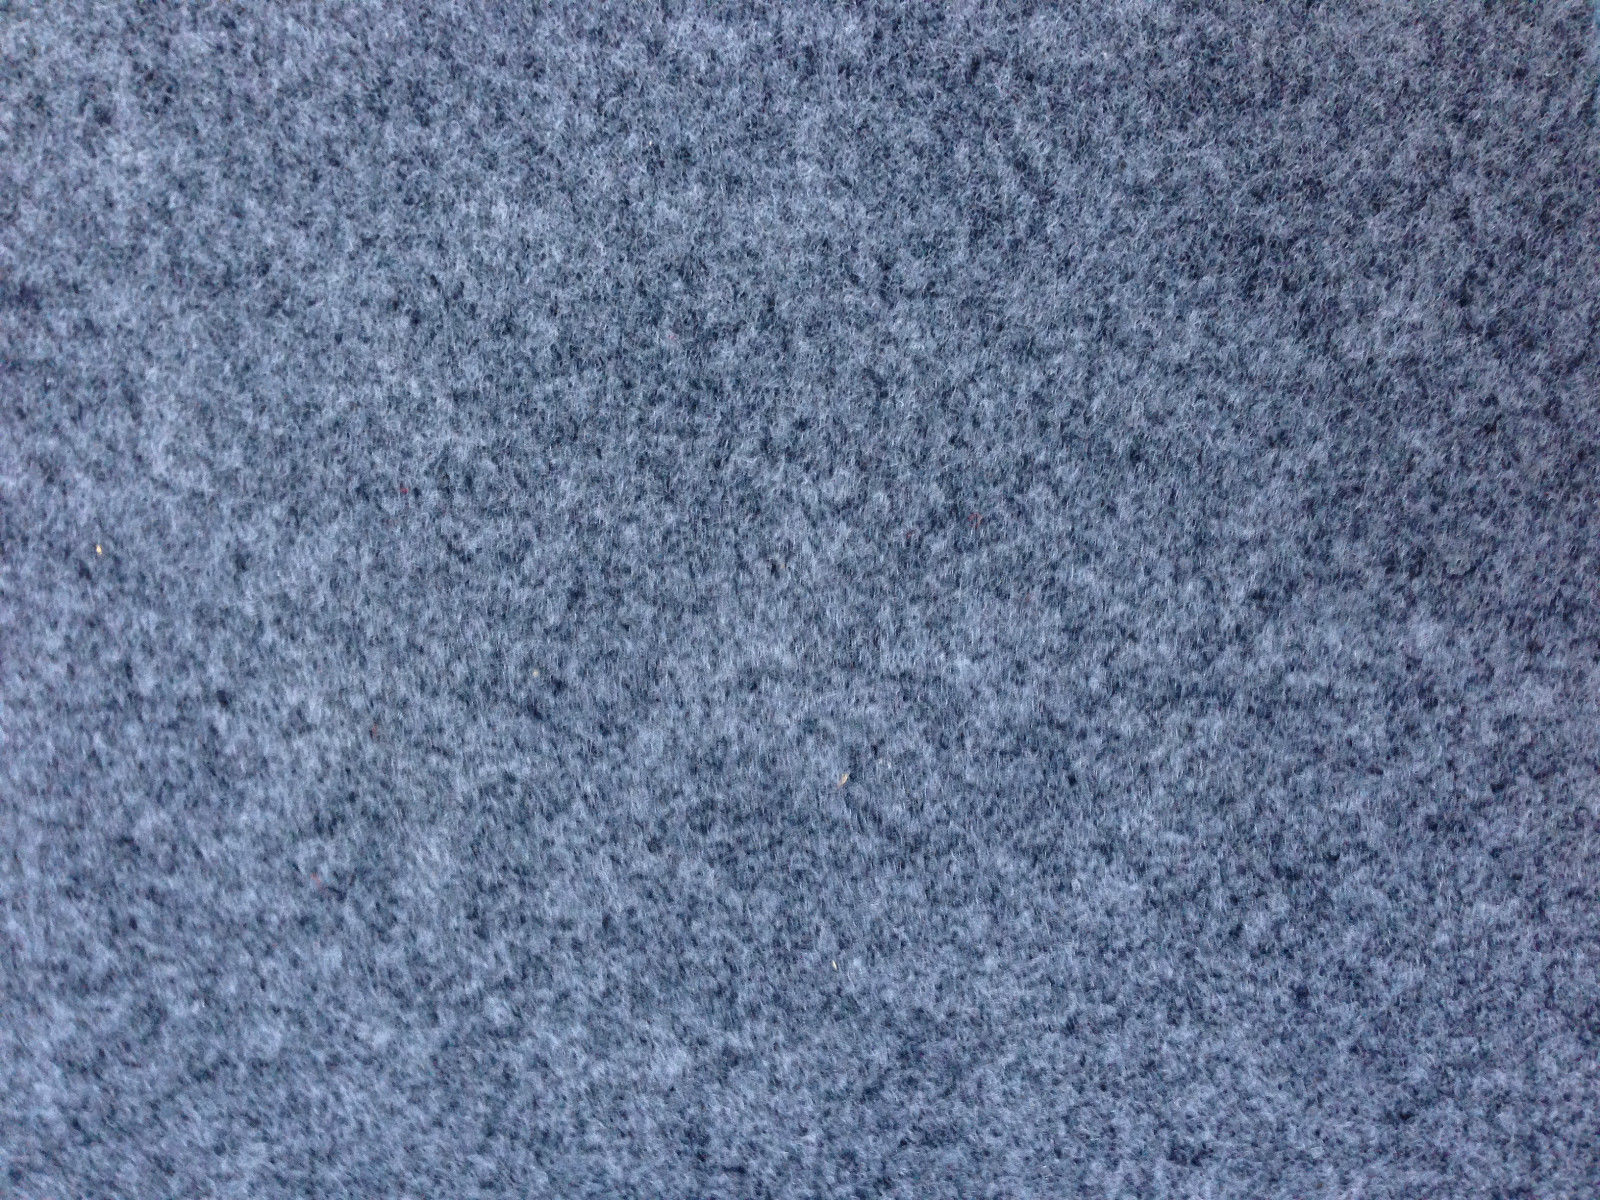 cheap grey velour carpet tiles 50p each rt floors. Black Bedroom Furniture Sets. Home Design Ideas